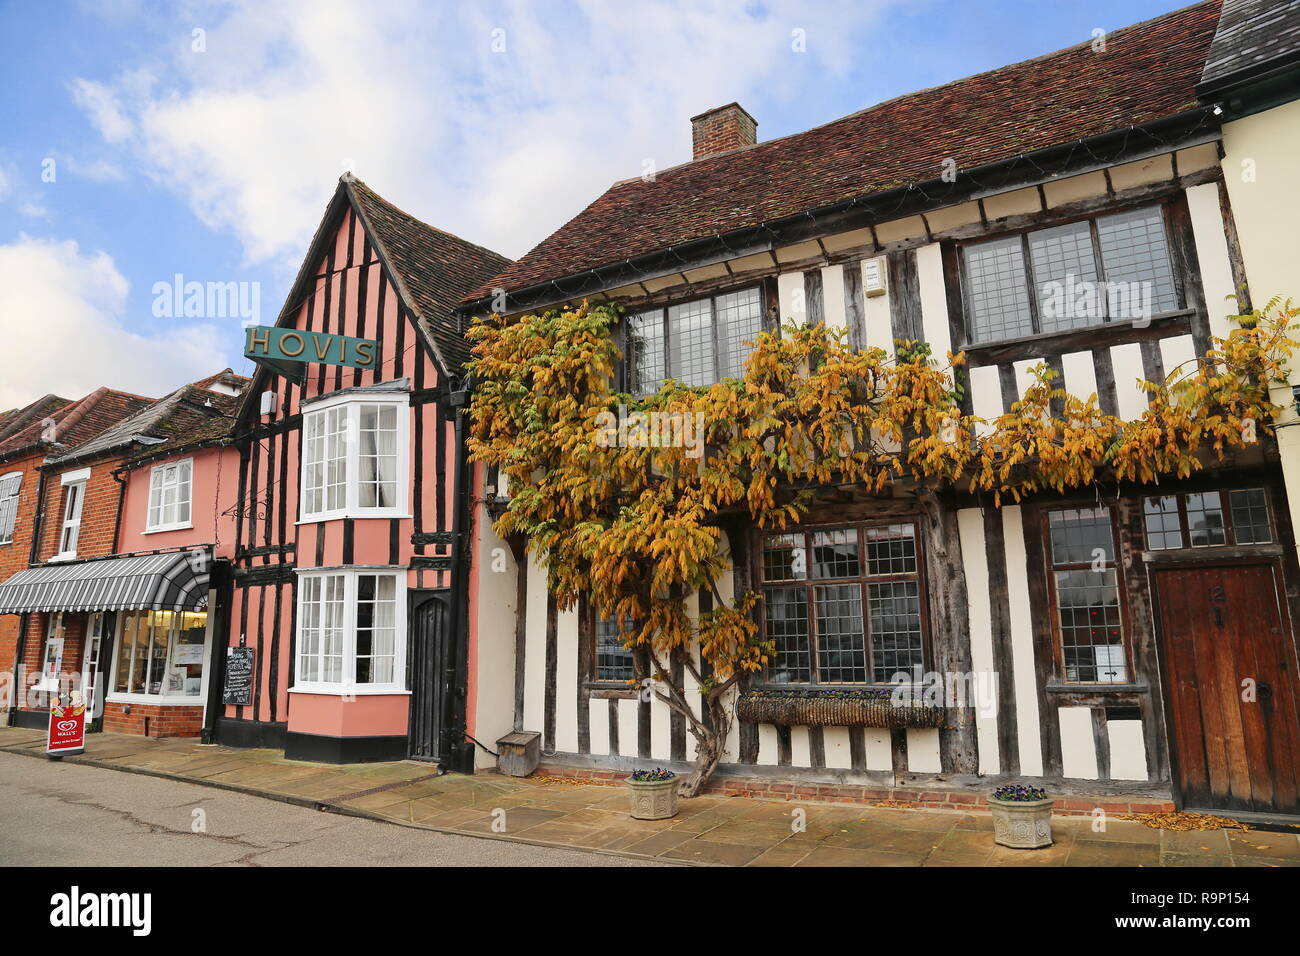 Sparling & Faiers Bakery, Market Place, Lavenham, Babergh district, Suffolk, East Anglia, England, Great Britain, United Kingdom, UK, Europe - Stock Image